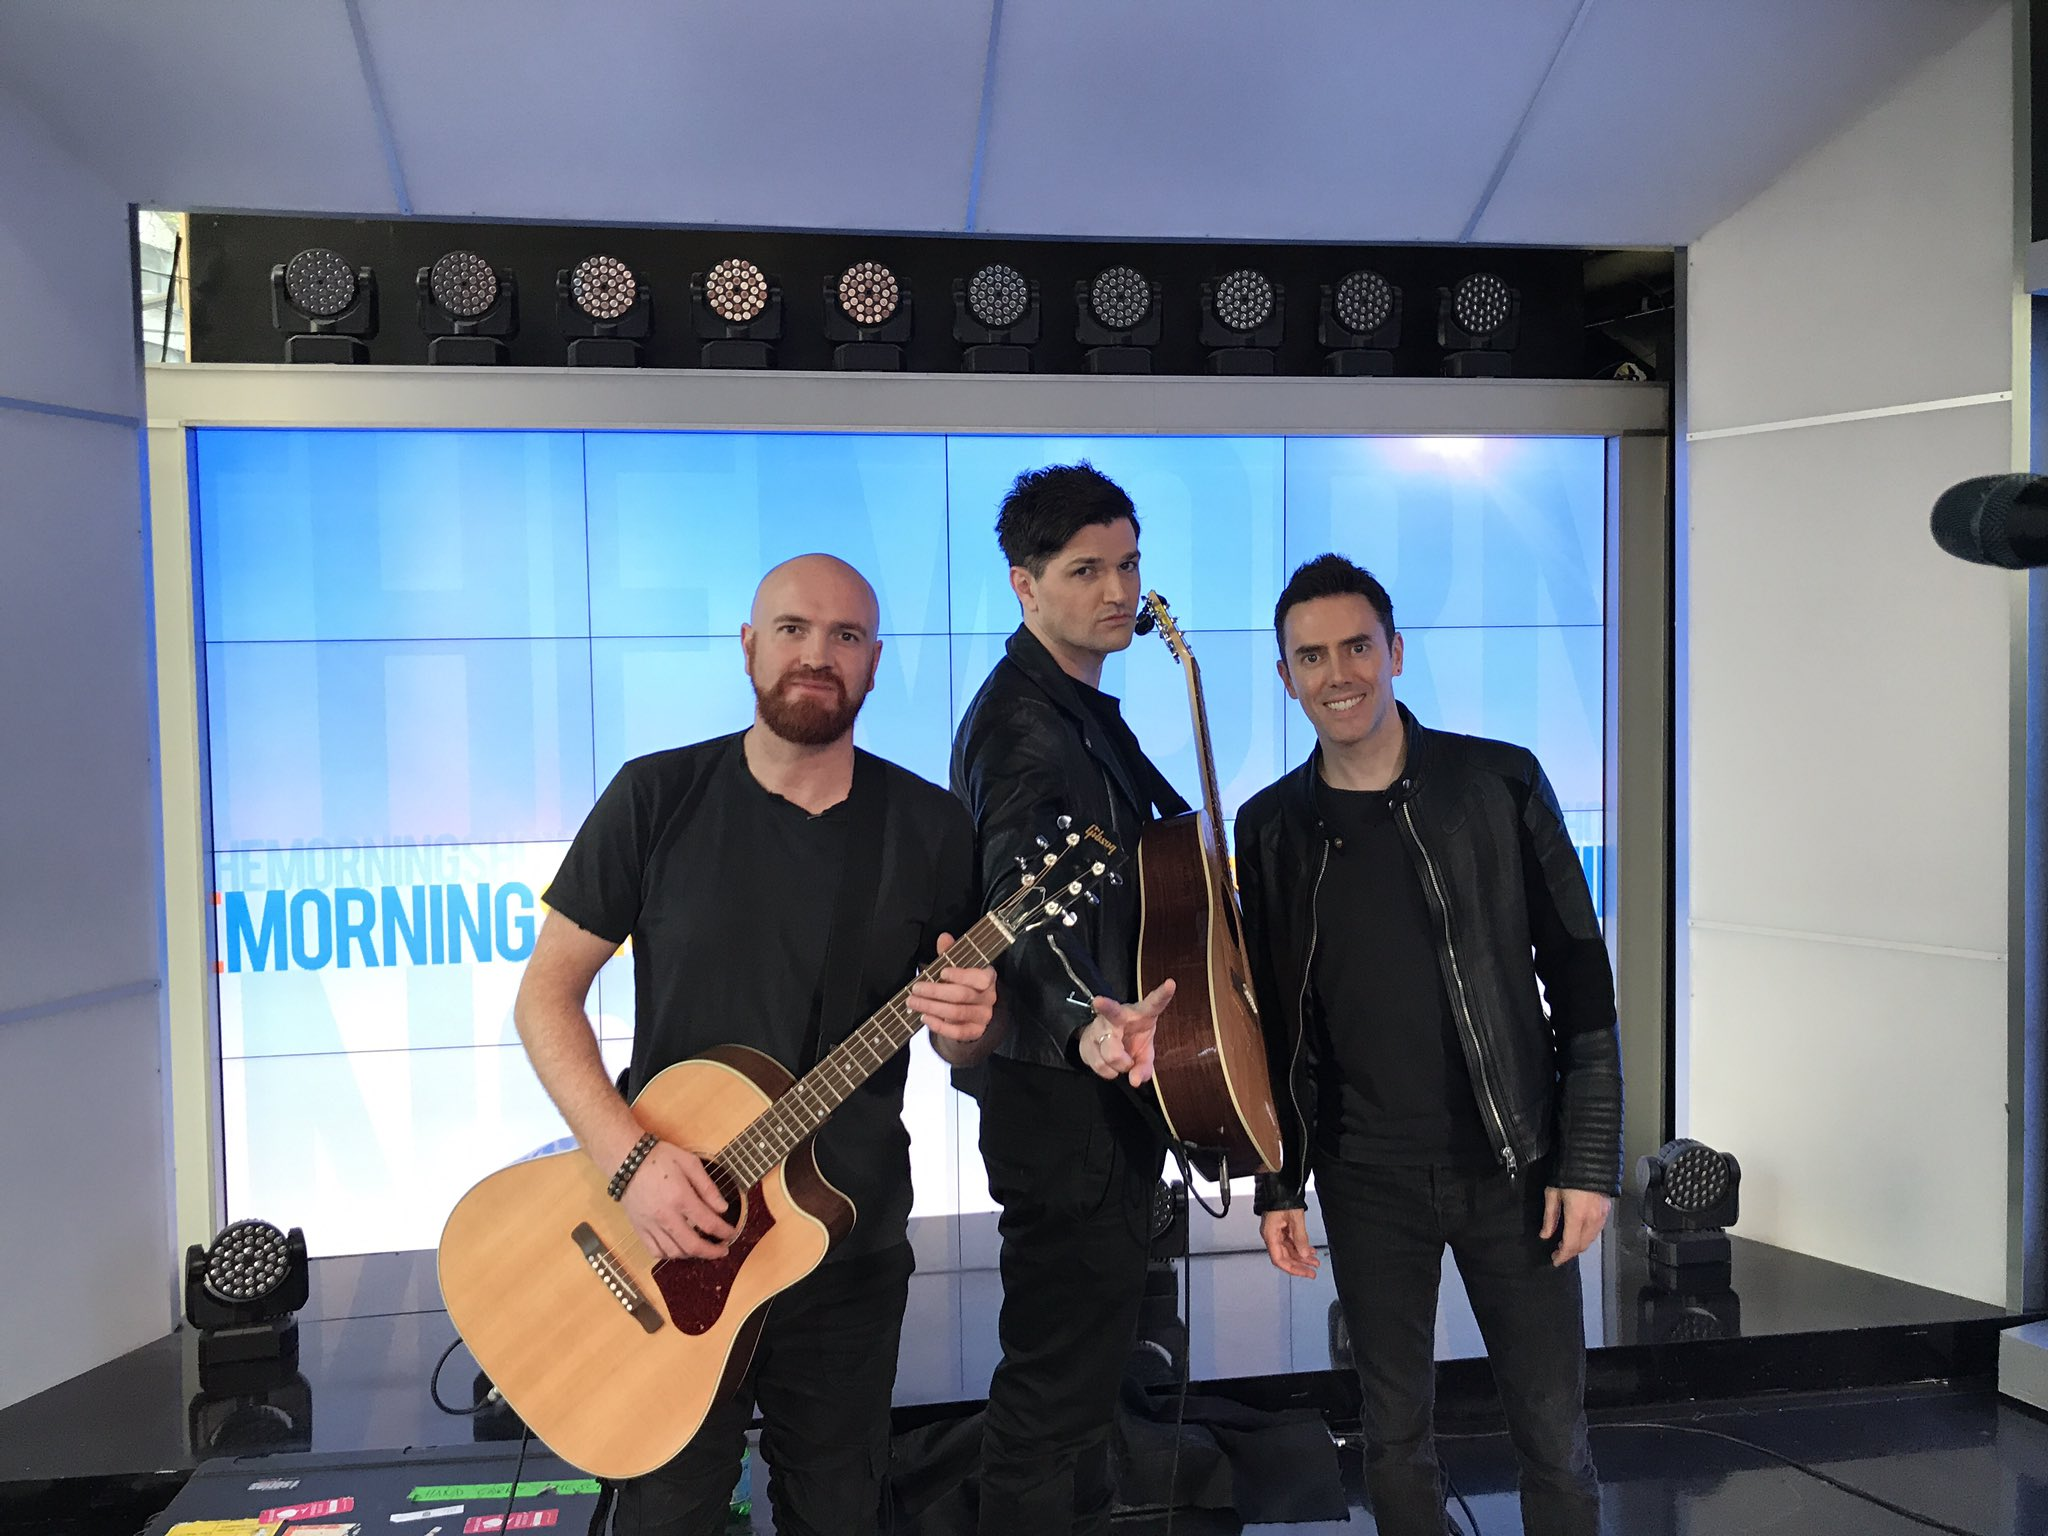 About to perform @sunriseon7 https://t.co/jJDC5VUrU7